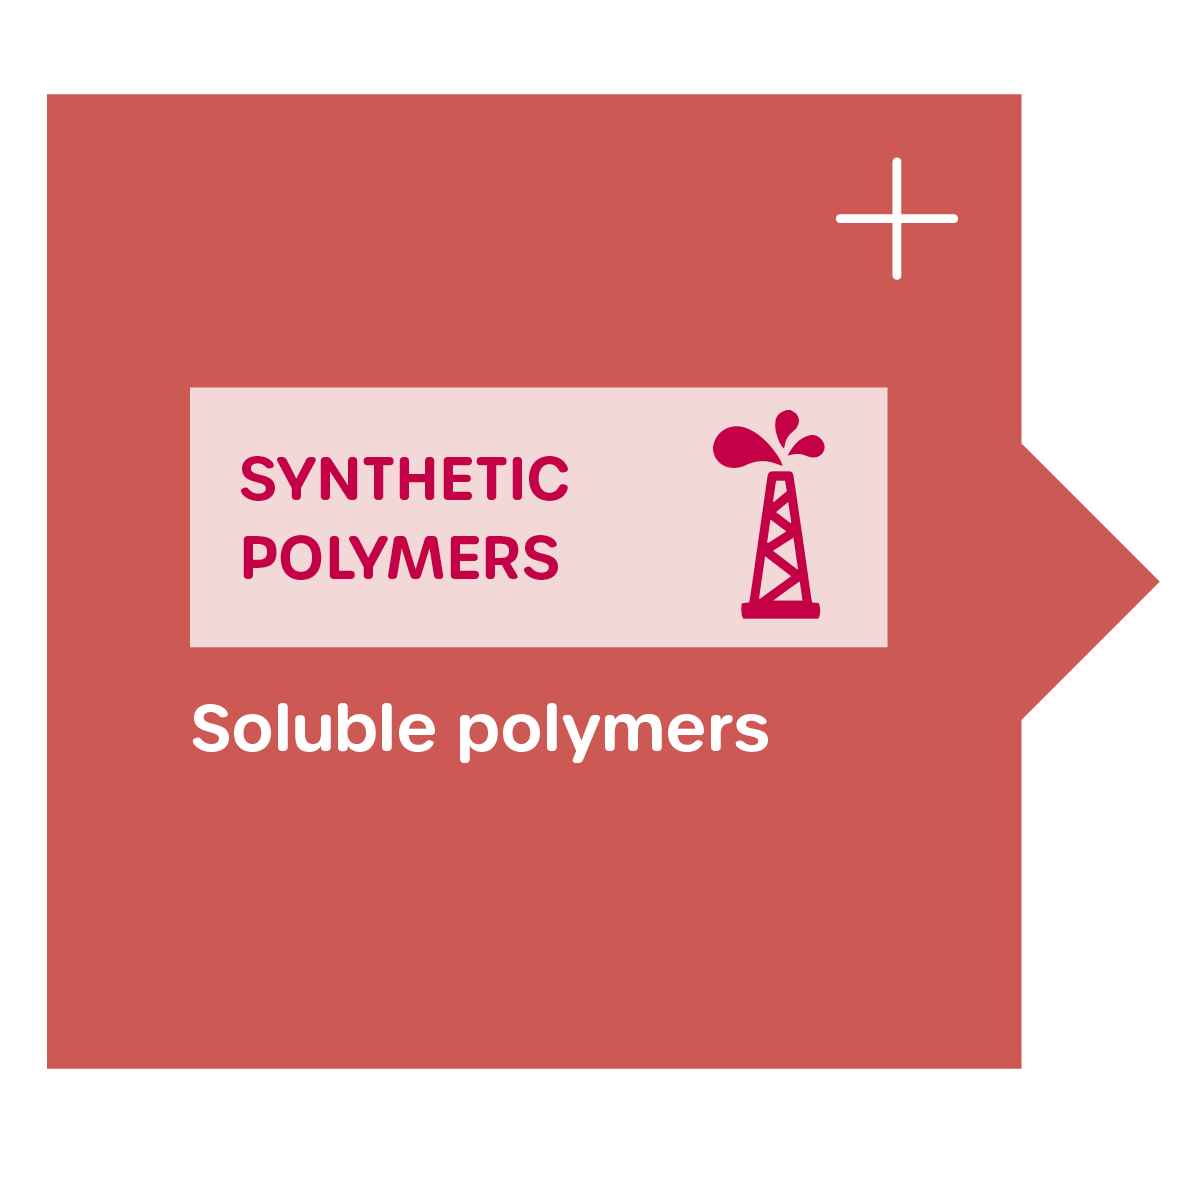 Liquid or soluble polymers